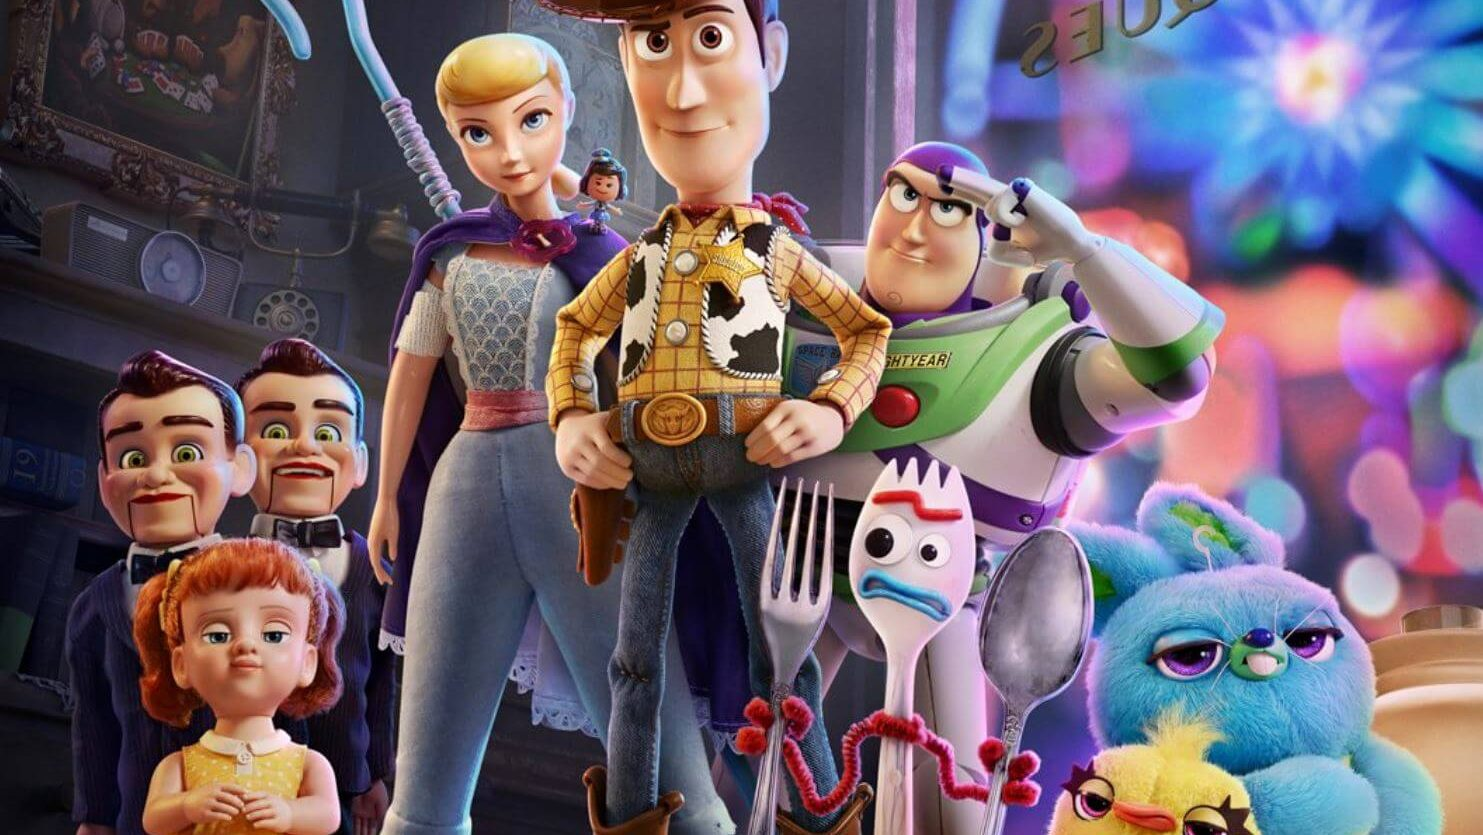 https://cinemaplanet.pt/wp-content/uploads/2019/08/cropped-toy-story-4.jpg